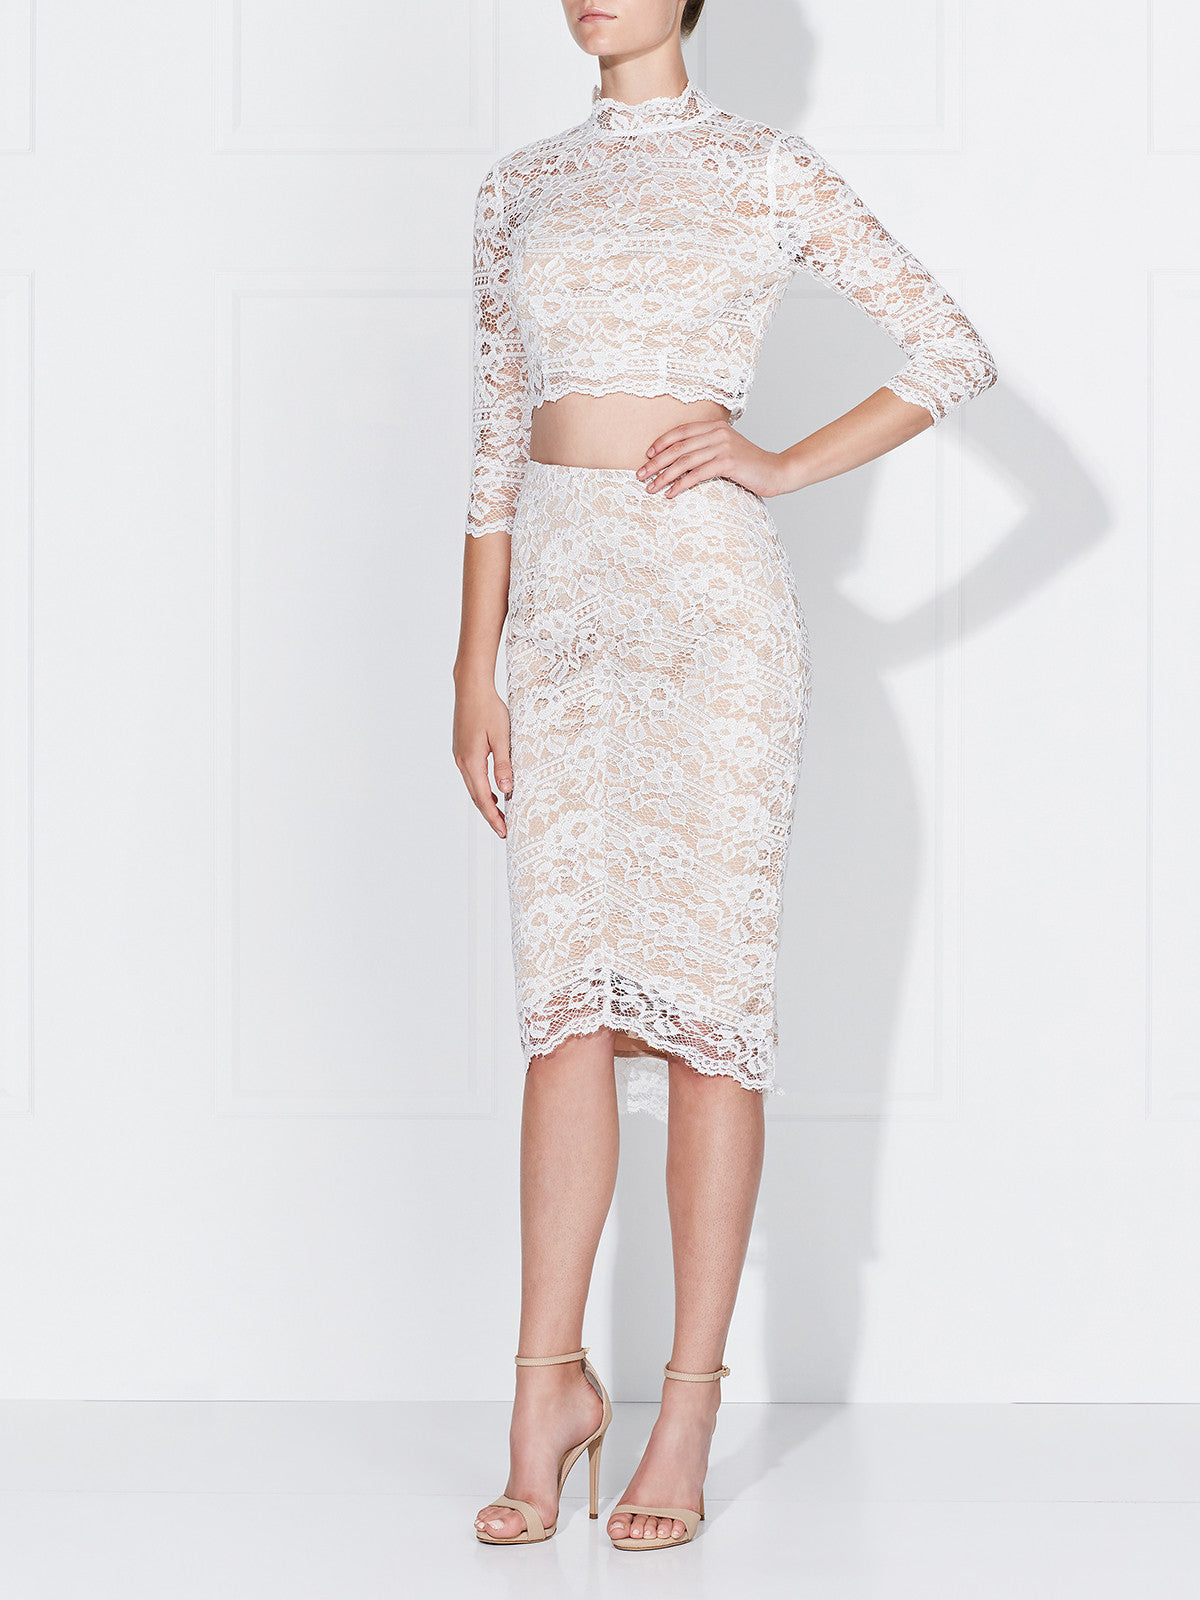 ROSE LACE SKIRT- IVORY/NUDE